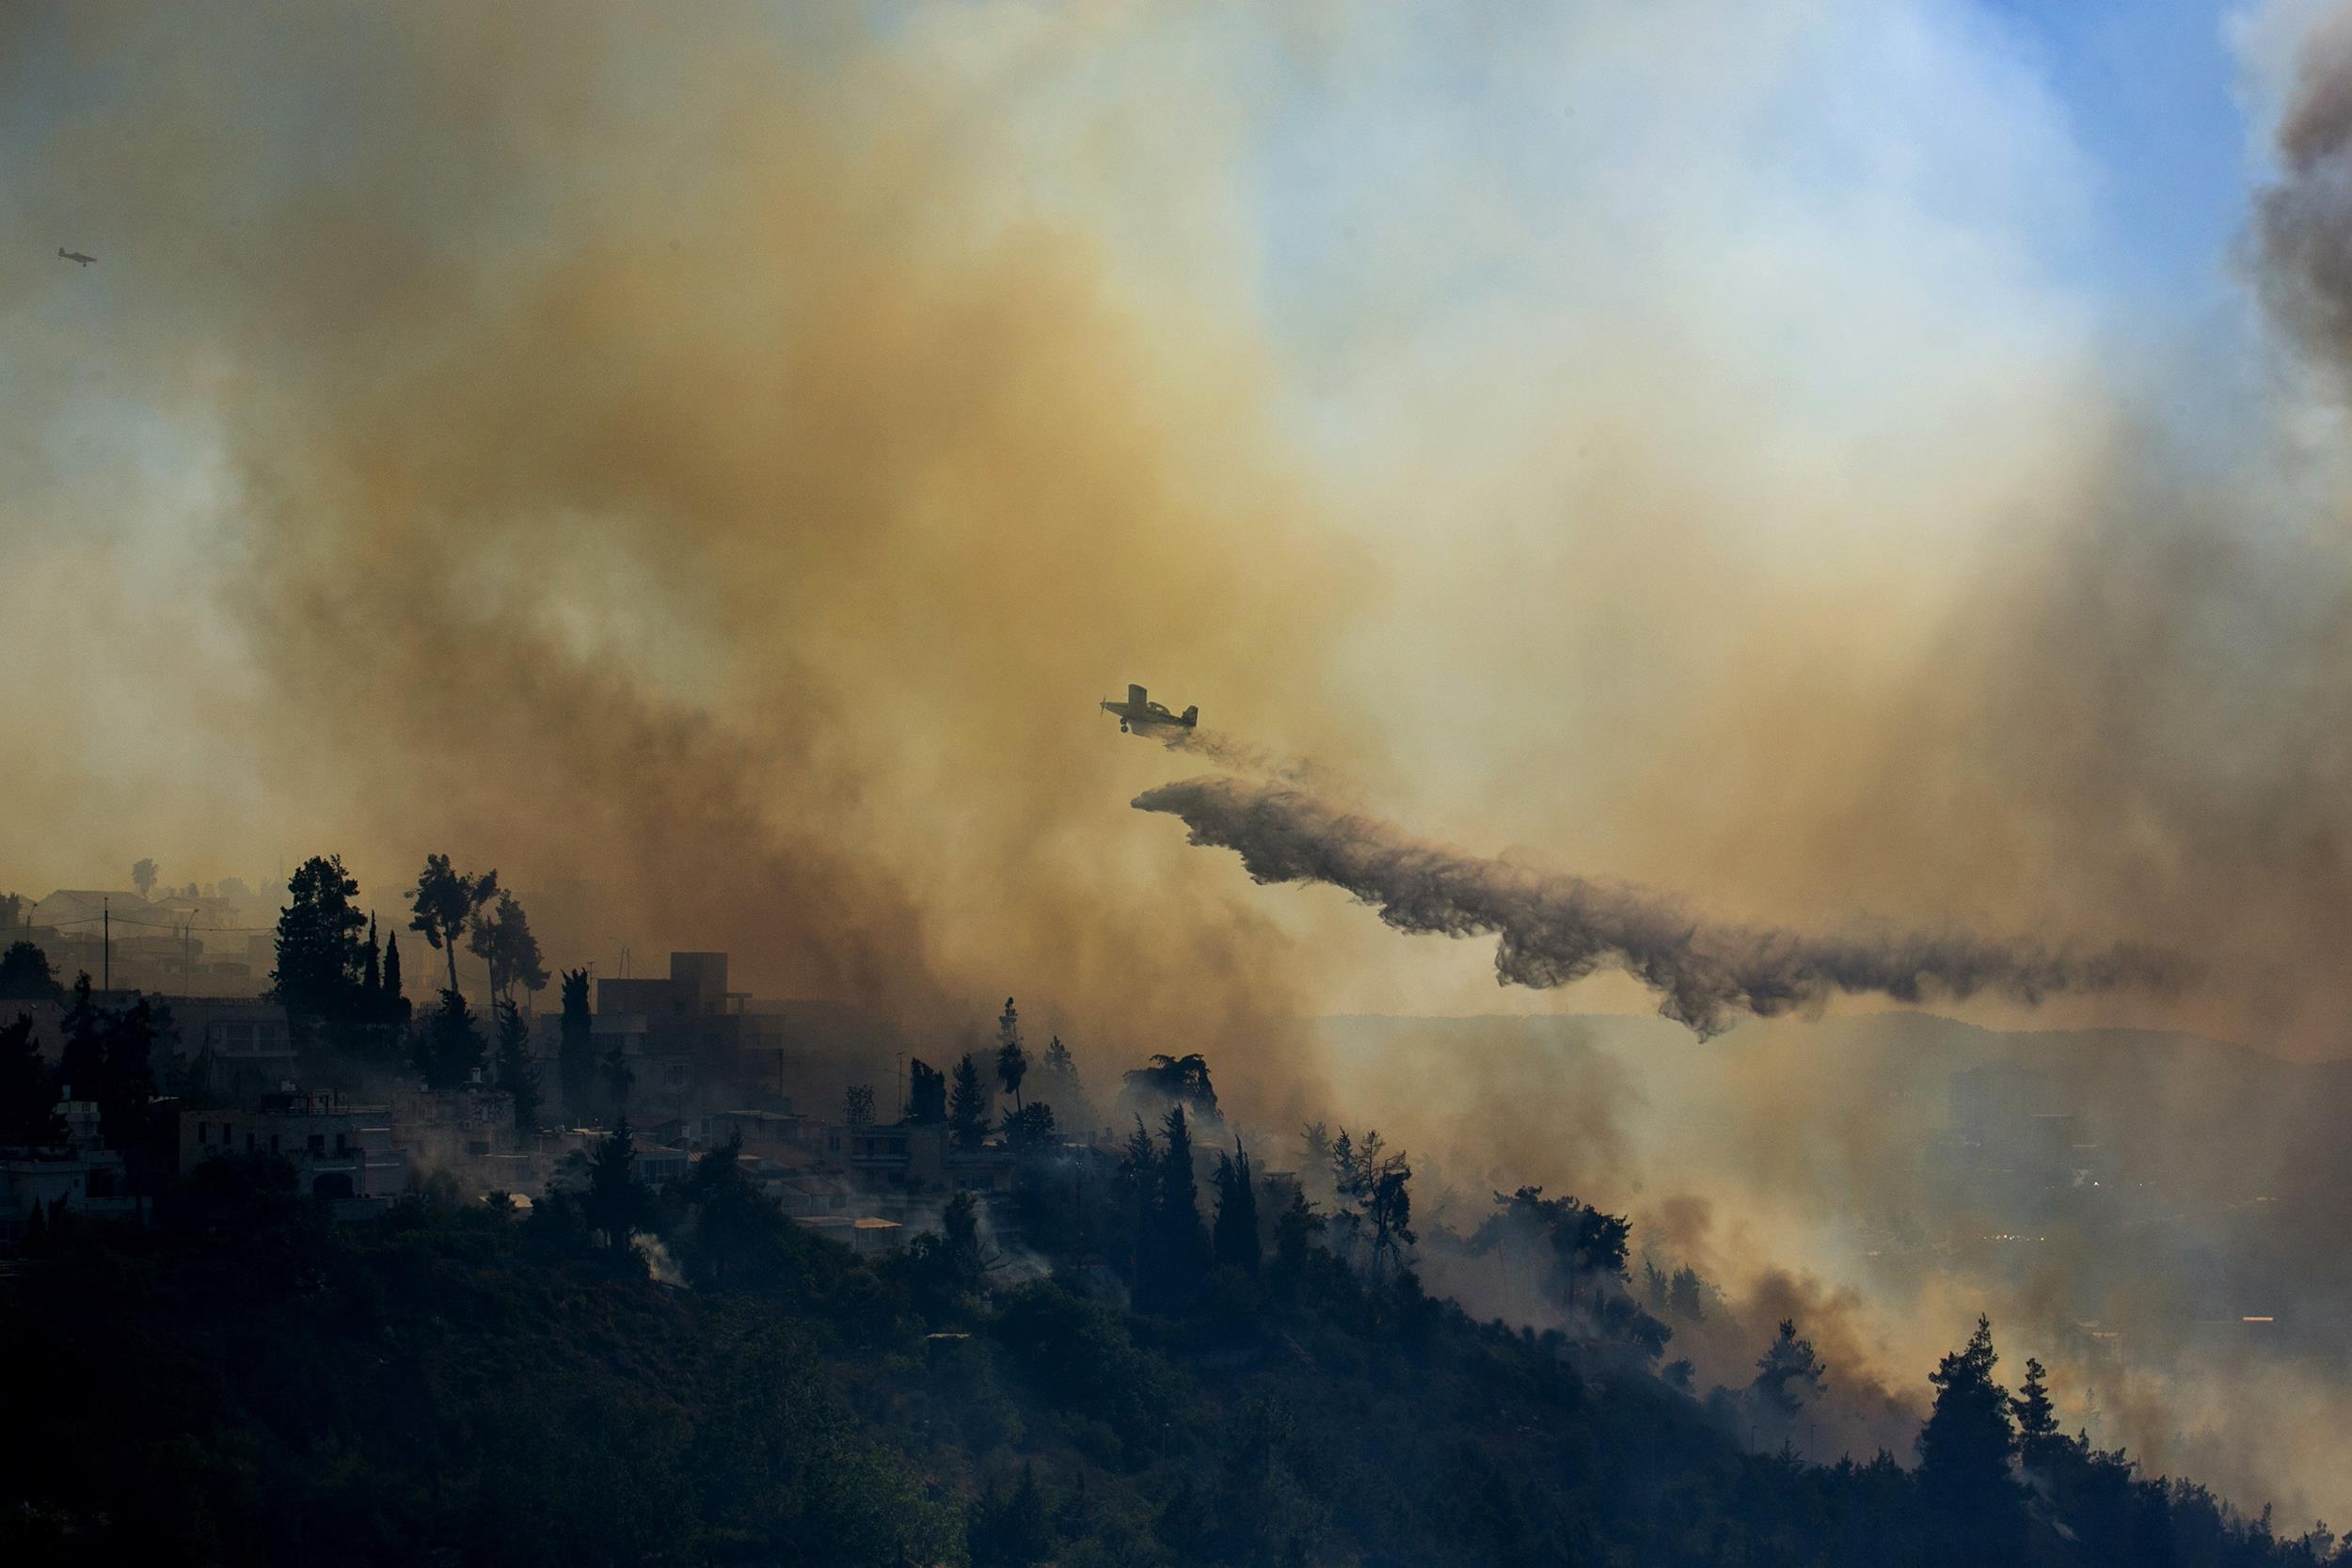 Image: A plane drops fire retardant to extinguish fire burning in the forest in Jerusalem, Israel on June 25.